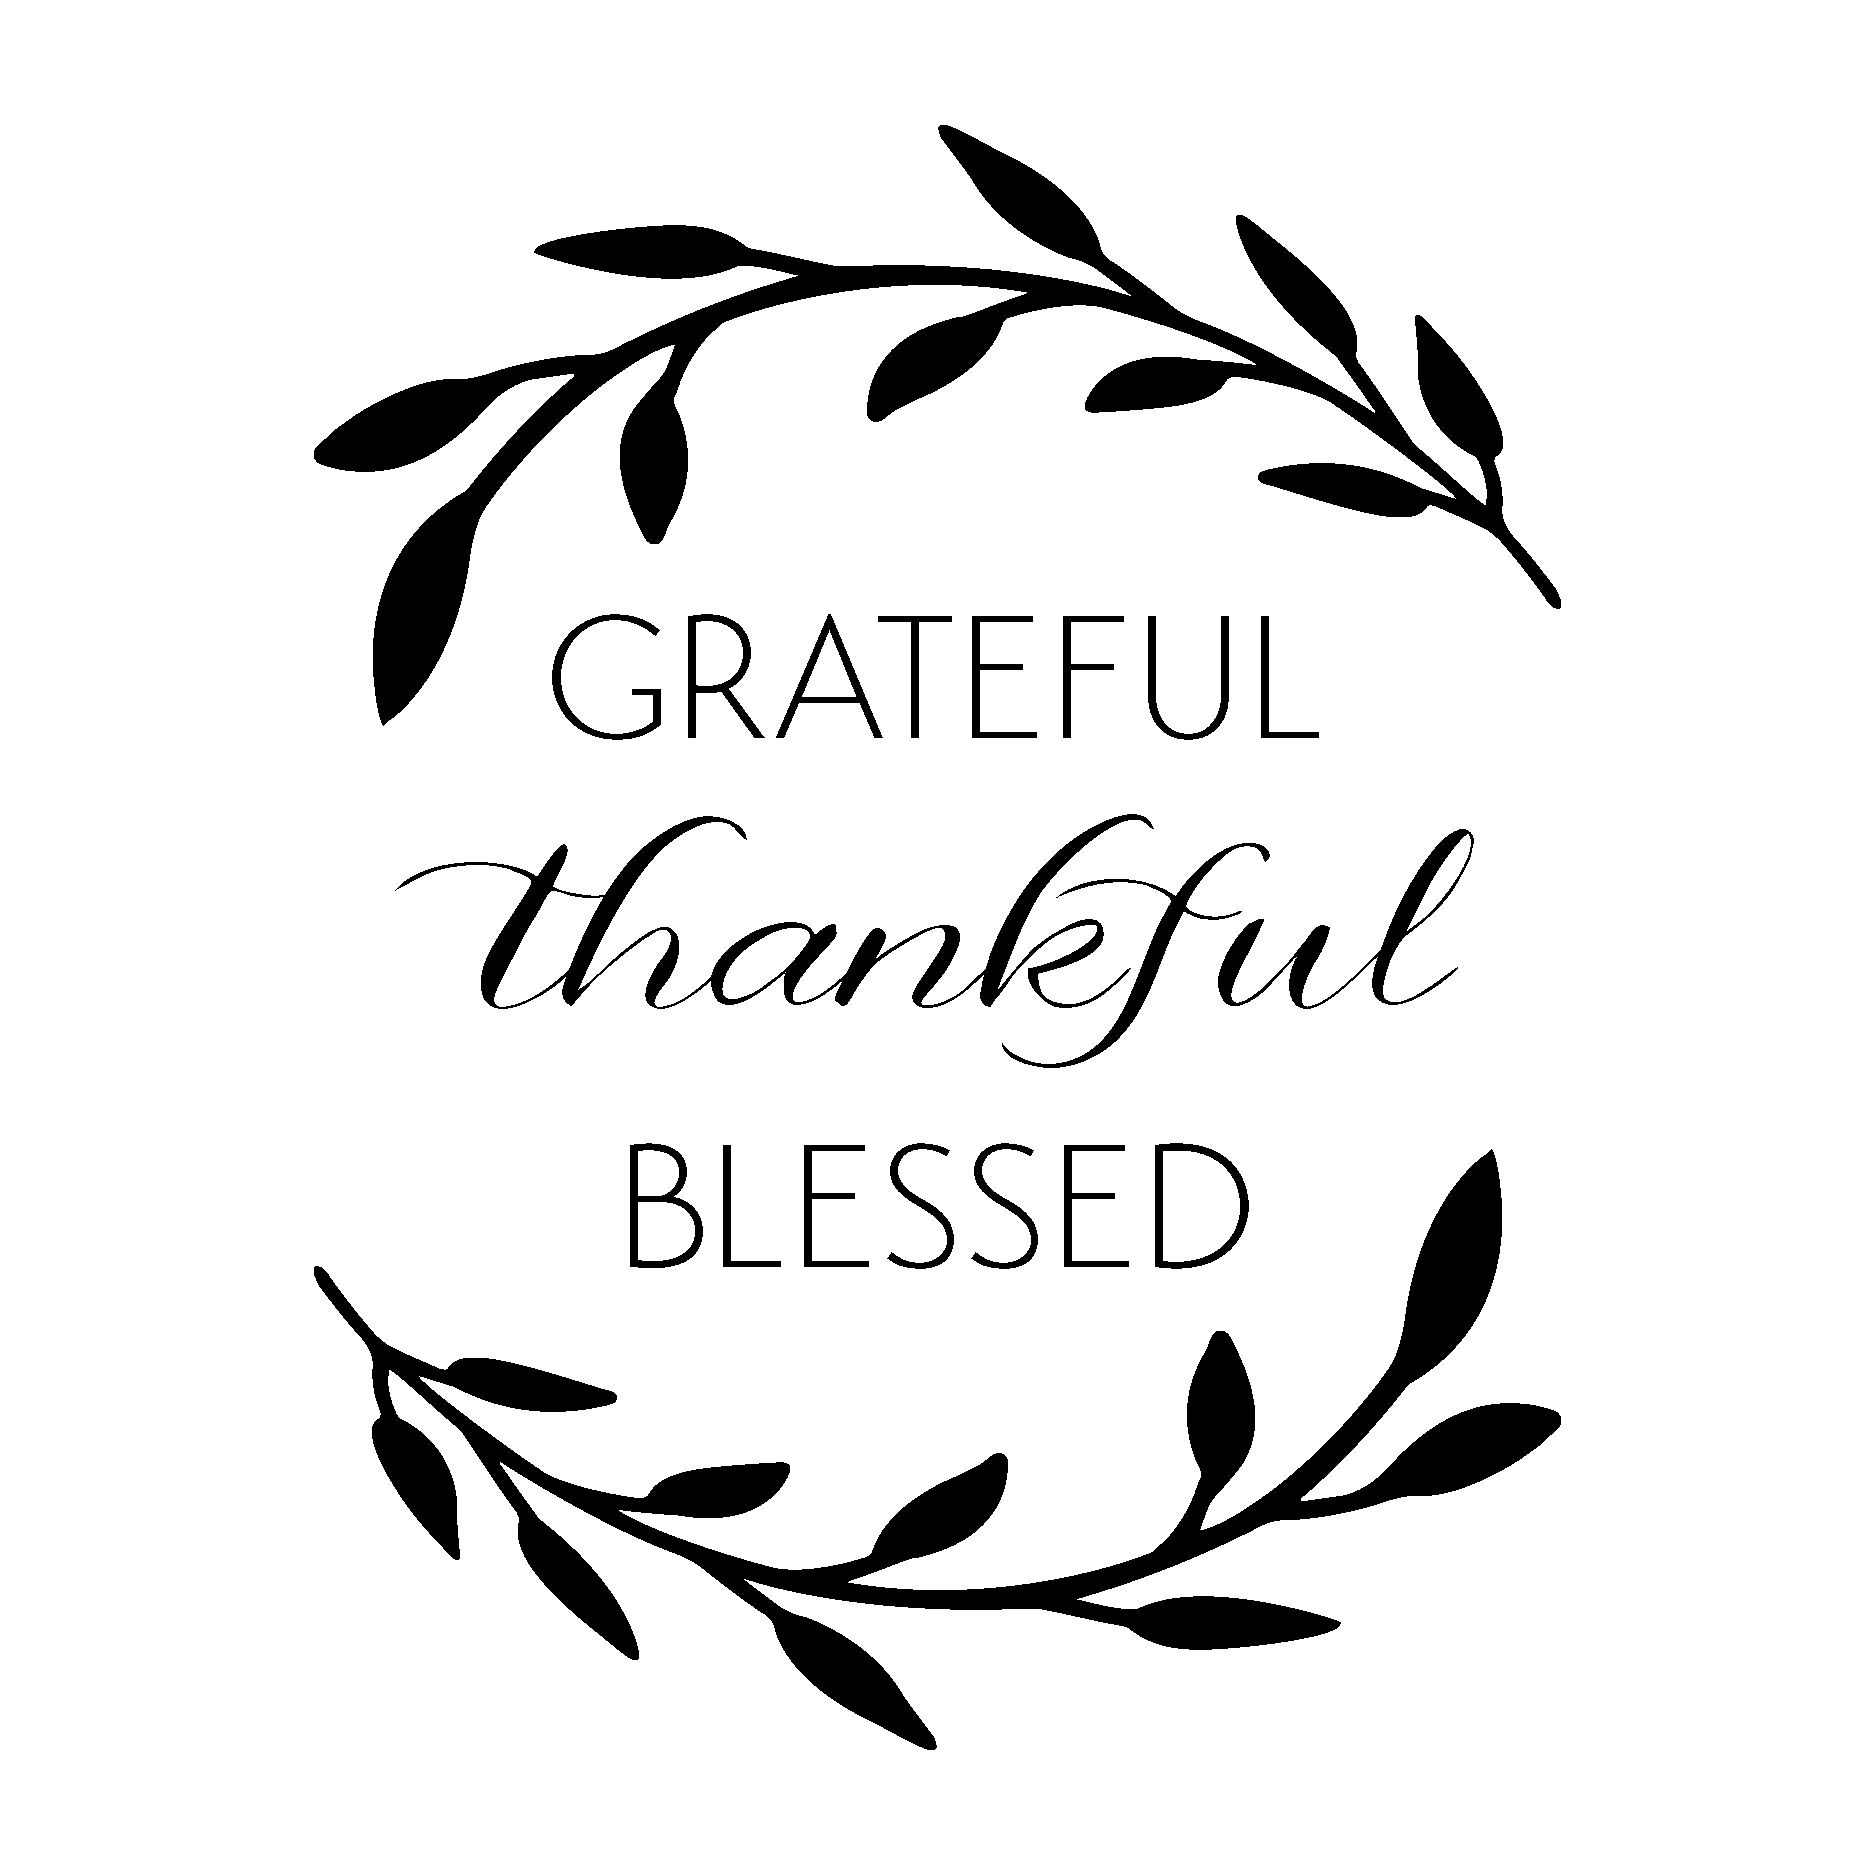 png download Grateful Thankful Blessed Wall Quotes